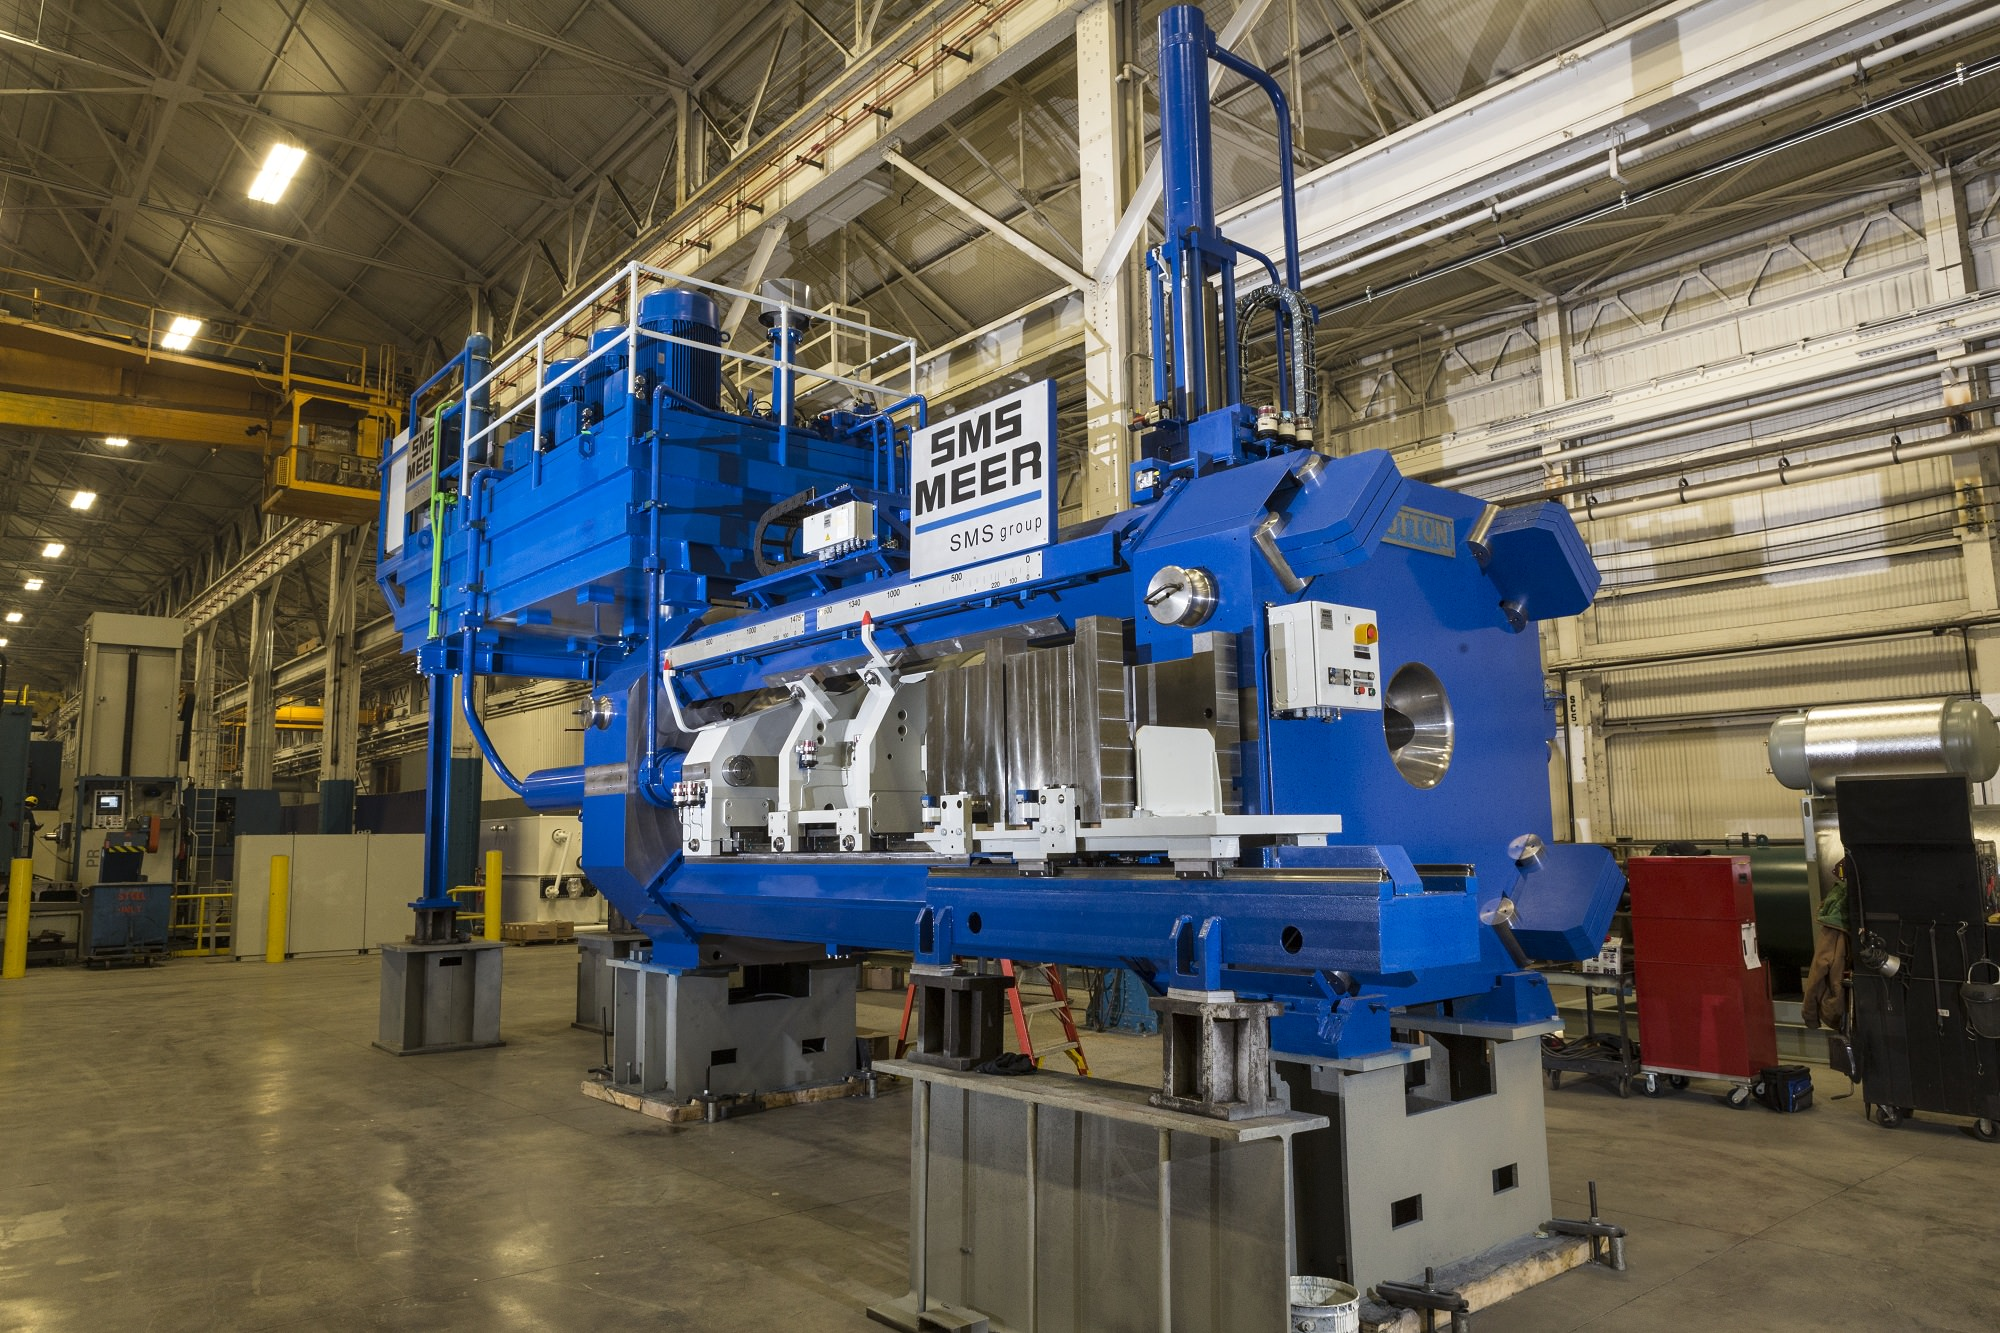 Sms Group Builds New Generation Of Sutton Extrusion Press